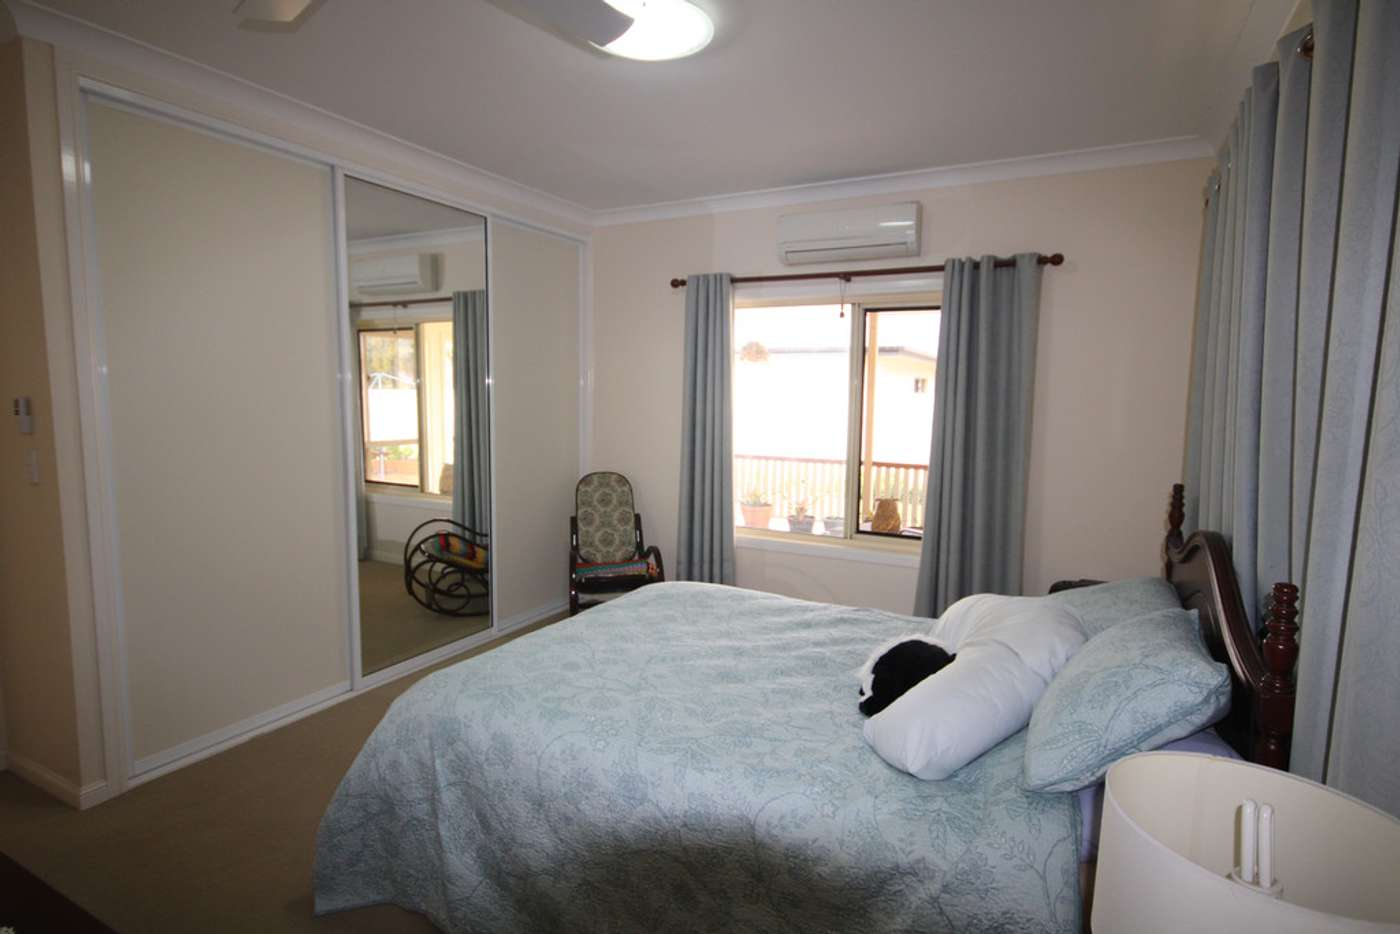 Sixth view of Homely house listing, 10 Jacaranda Court, Dalby QLD 4405